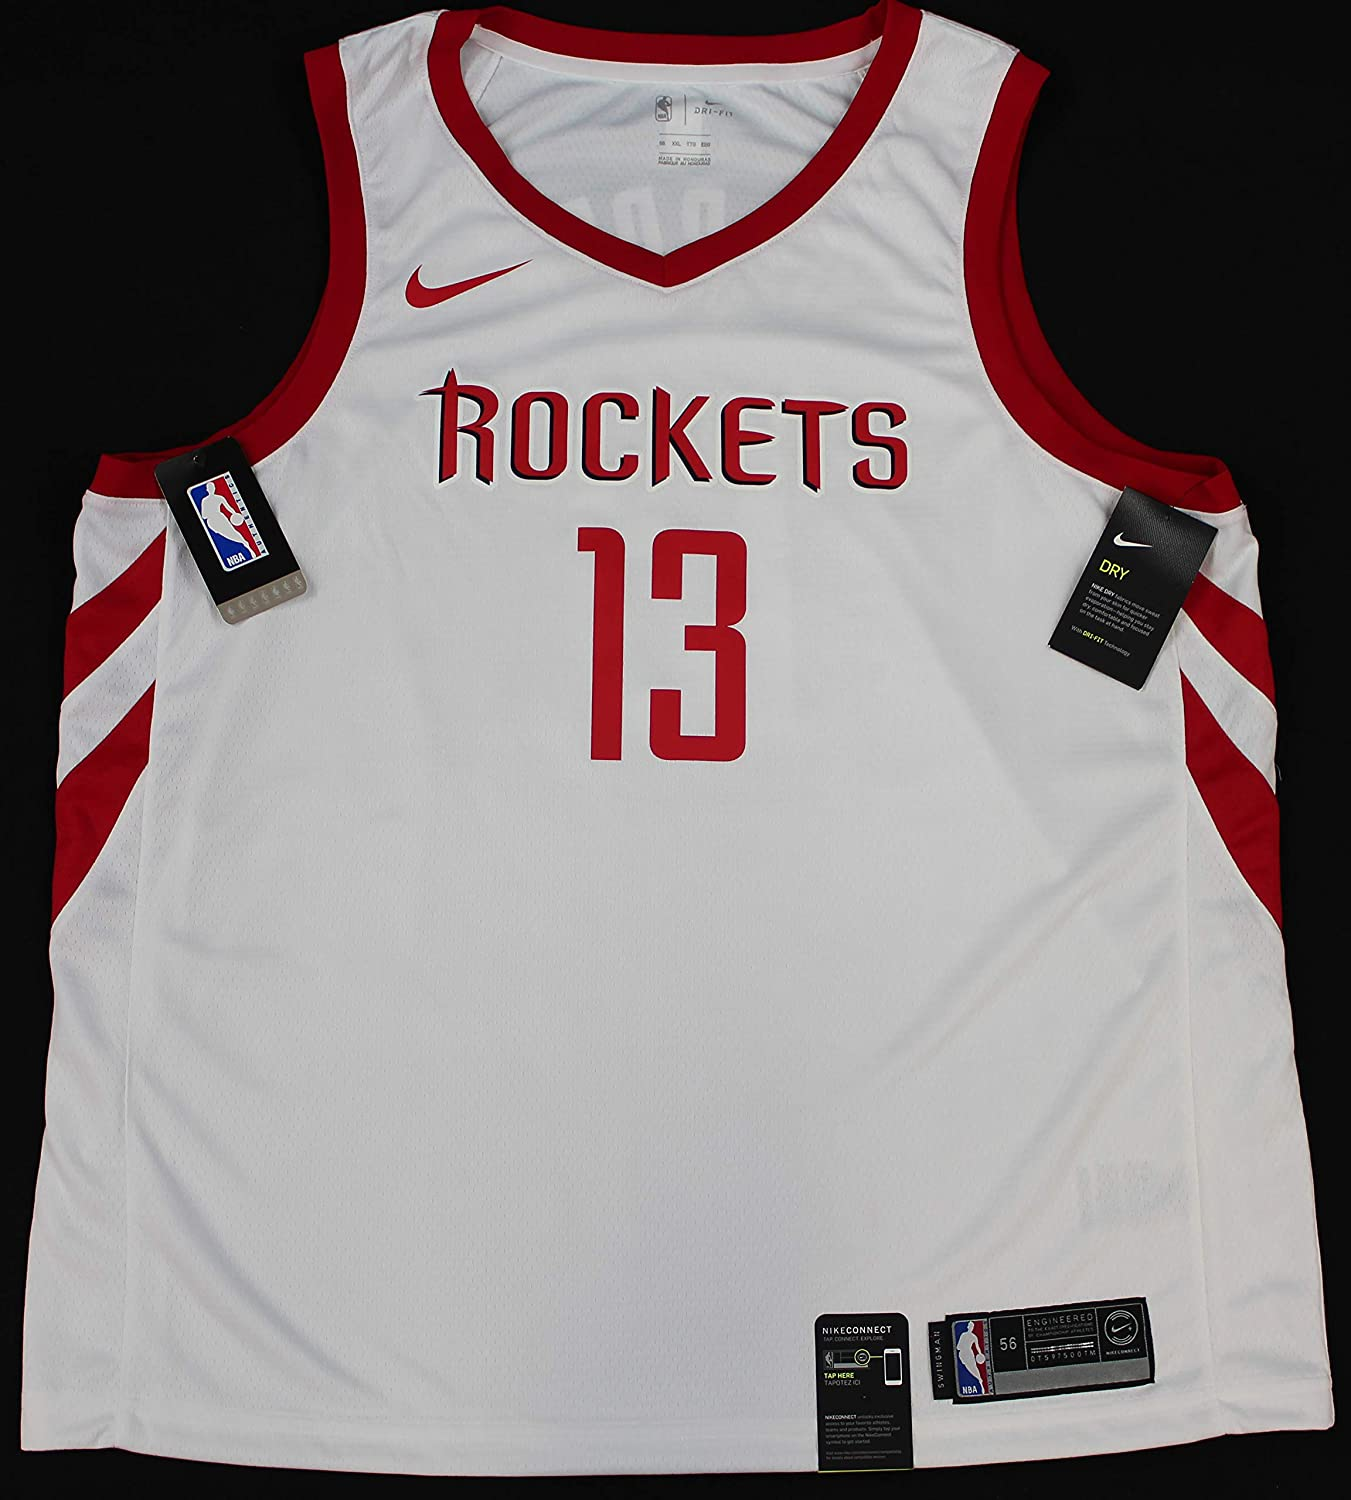 4028383a5 James Harden Autographed White Houston Rockets Jersey - Hand Signed By James  Harden and Certified Authentic by Fanatics - Includes Certificate of ...